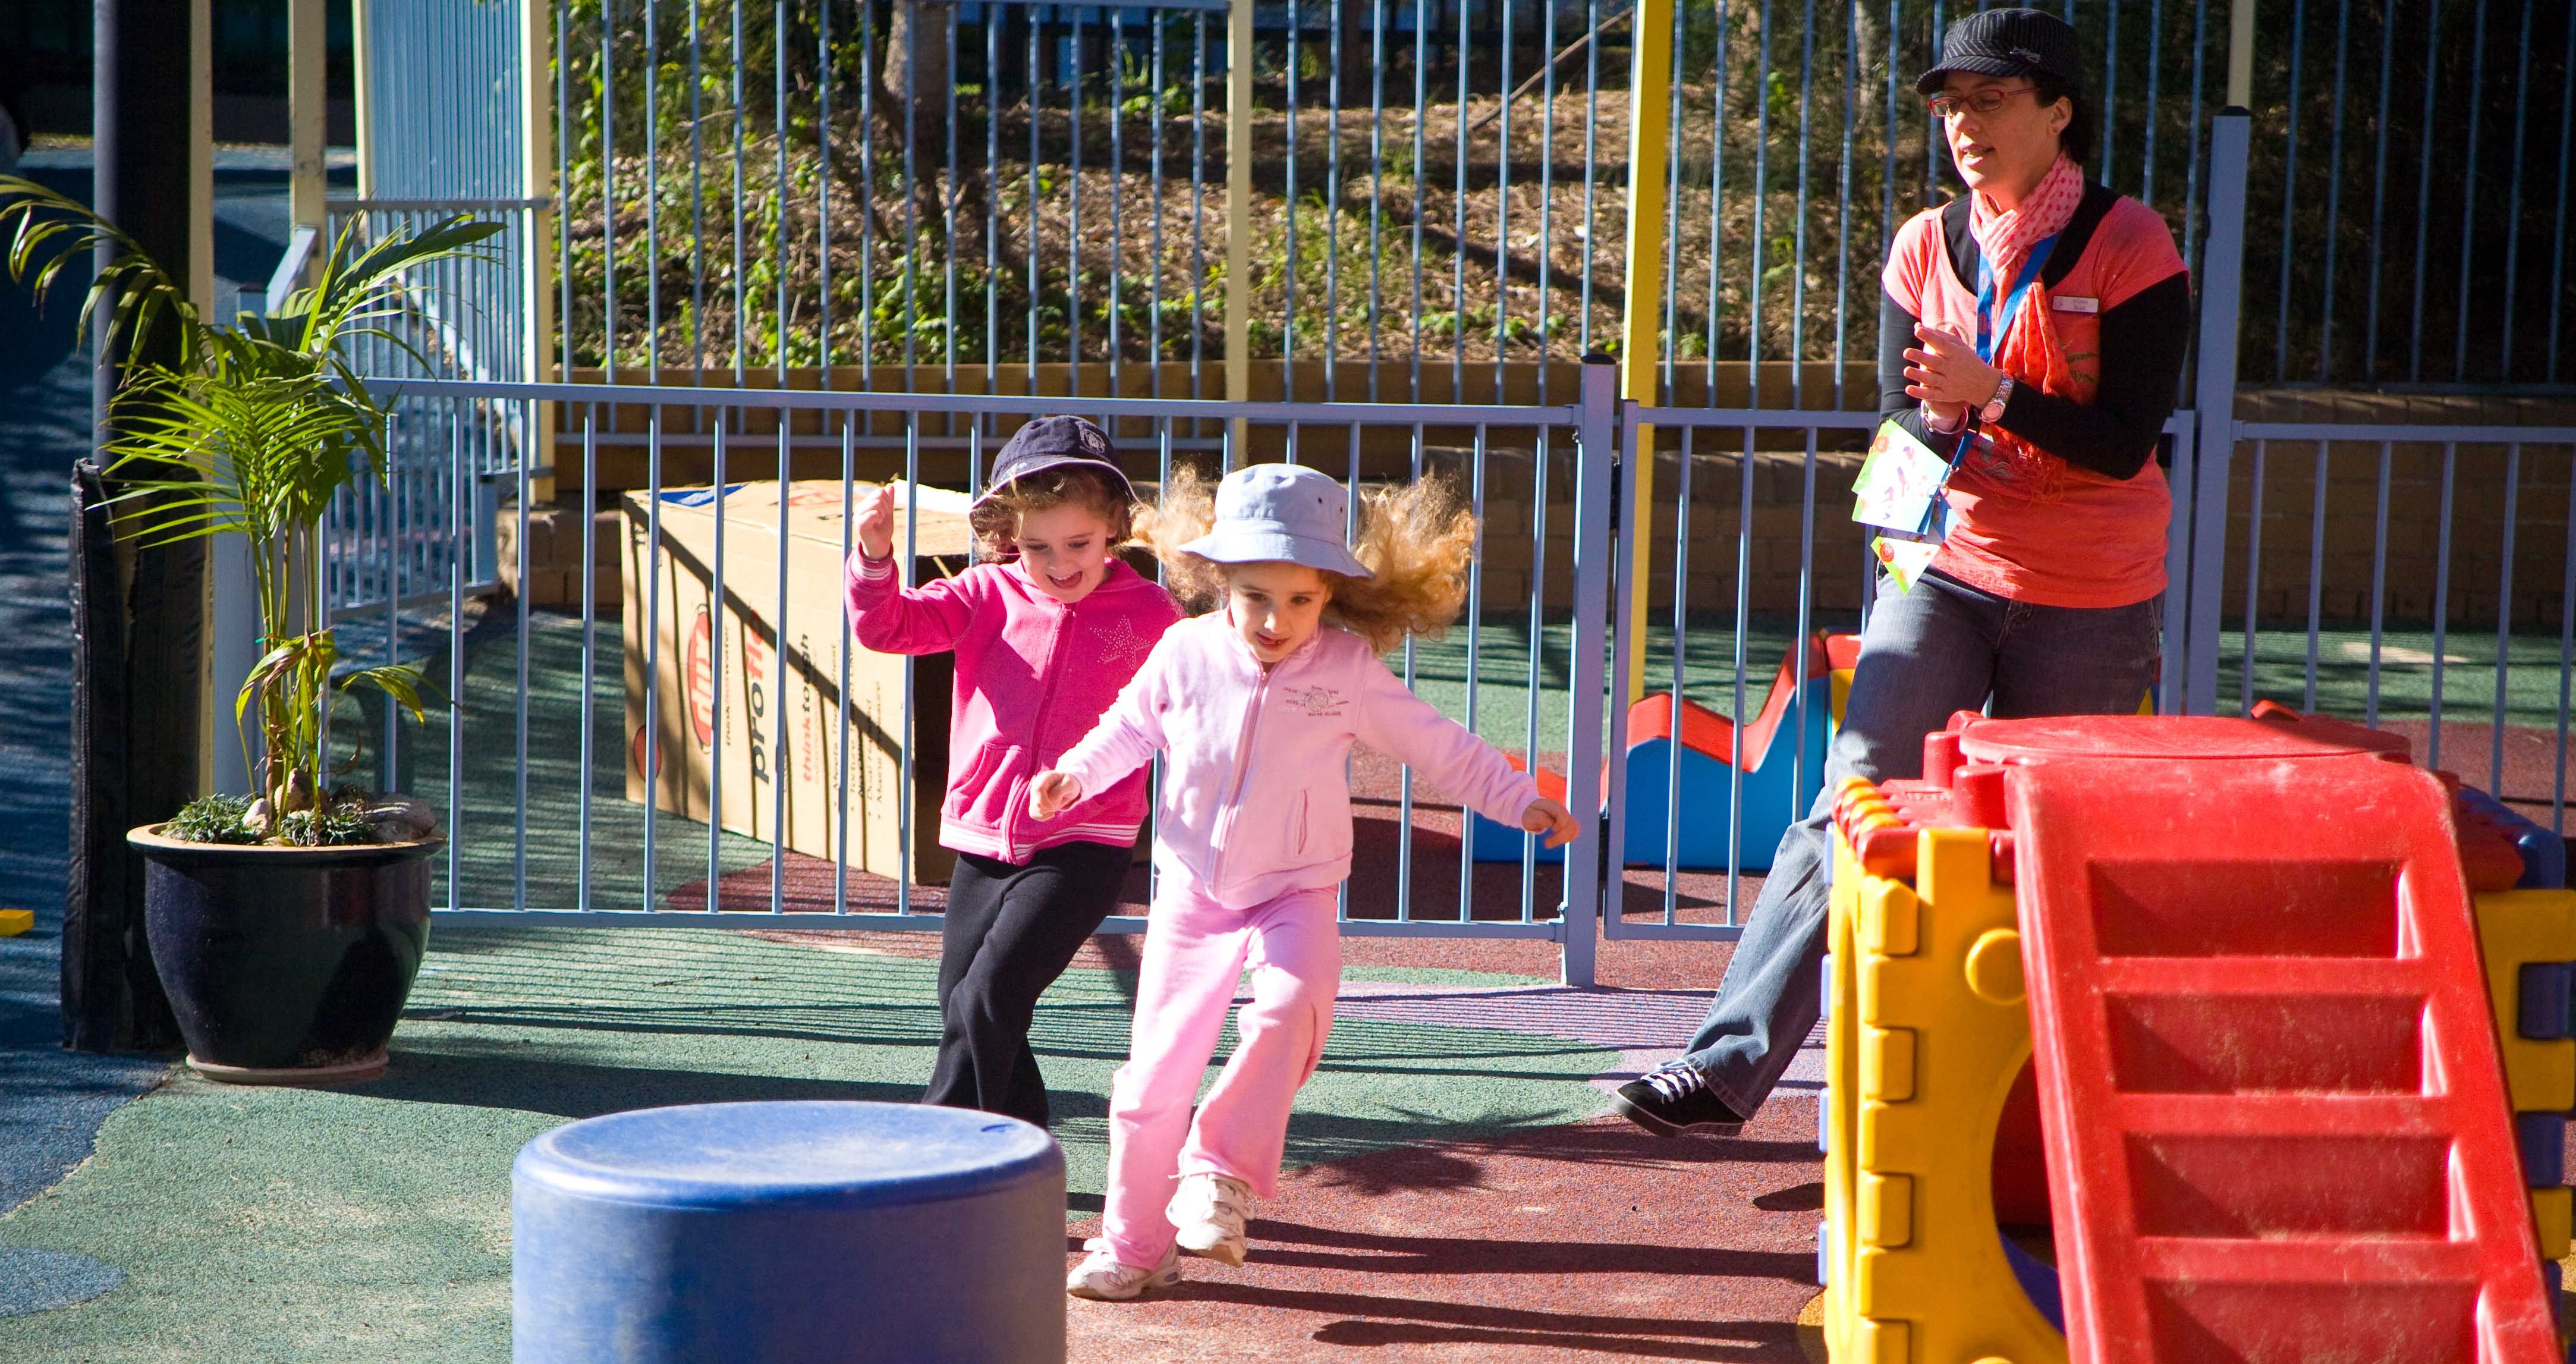 Two children complete an obstacle course with support from an early childhood educator